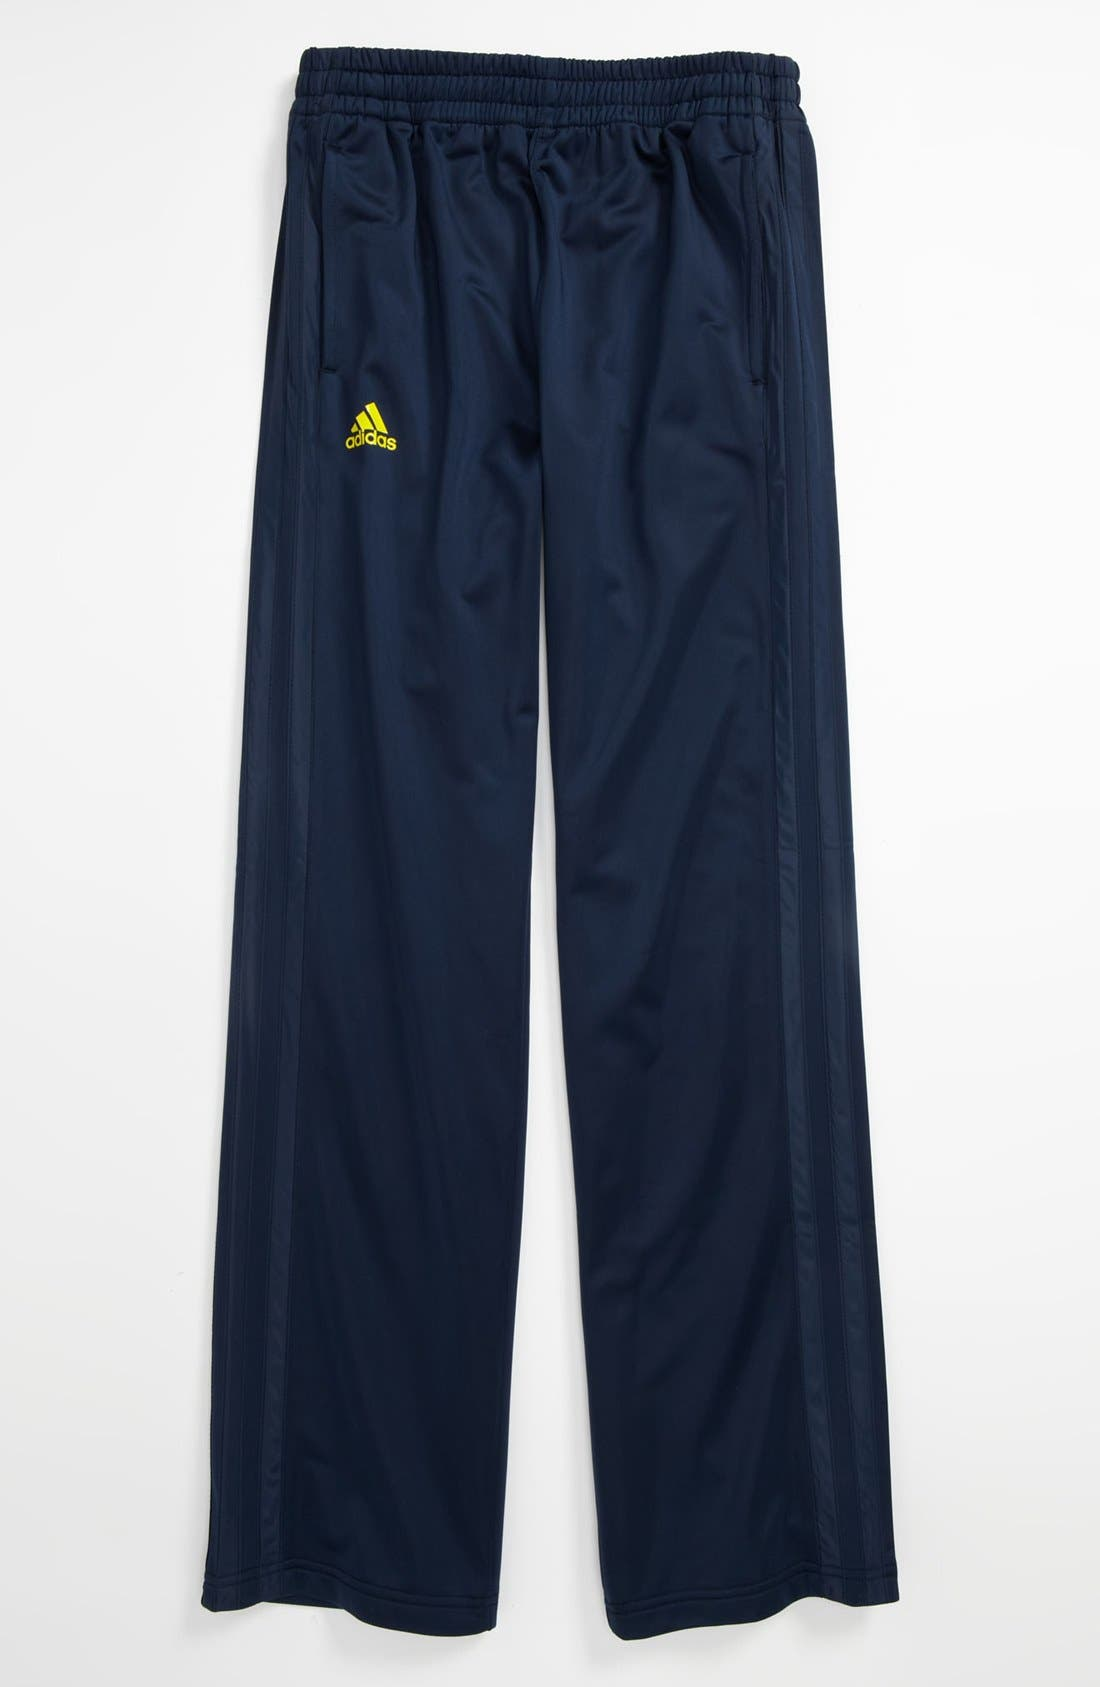 Alternate Image 1 Selected - adidas 'Fat Stripes' Basketball Pants (Big Boys)